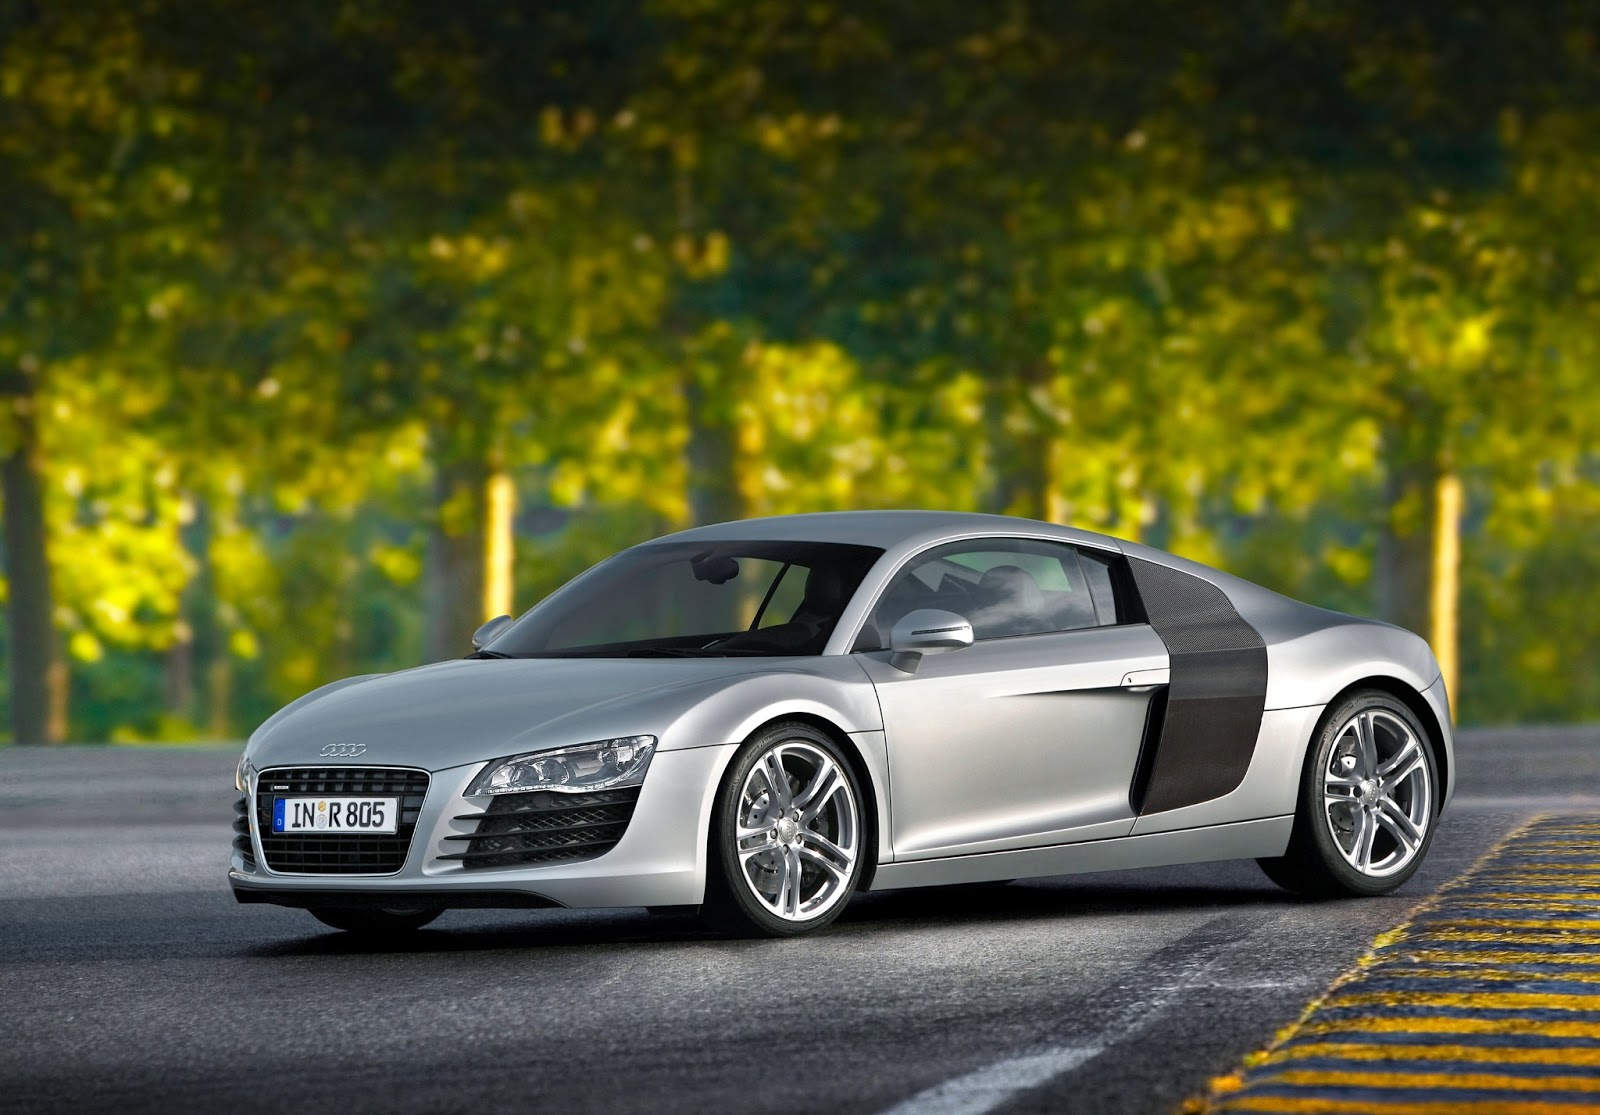 9 Seater Suv >> 2006 Audi R8 2008 Wallpapers Interiors and Exteriors ...